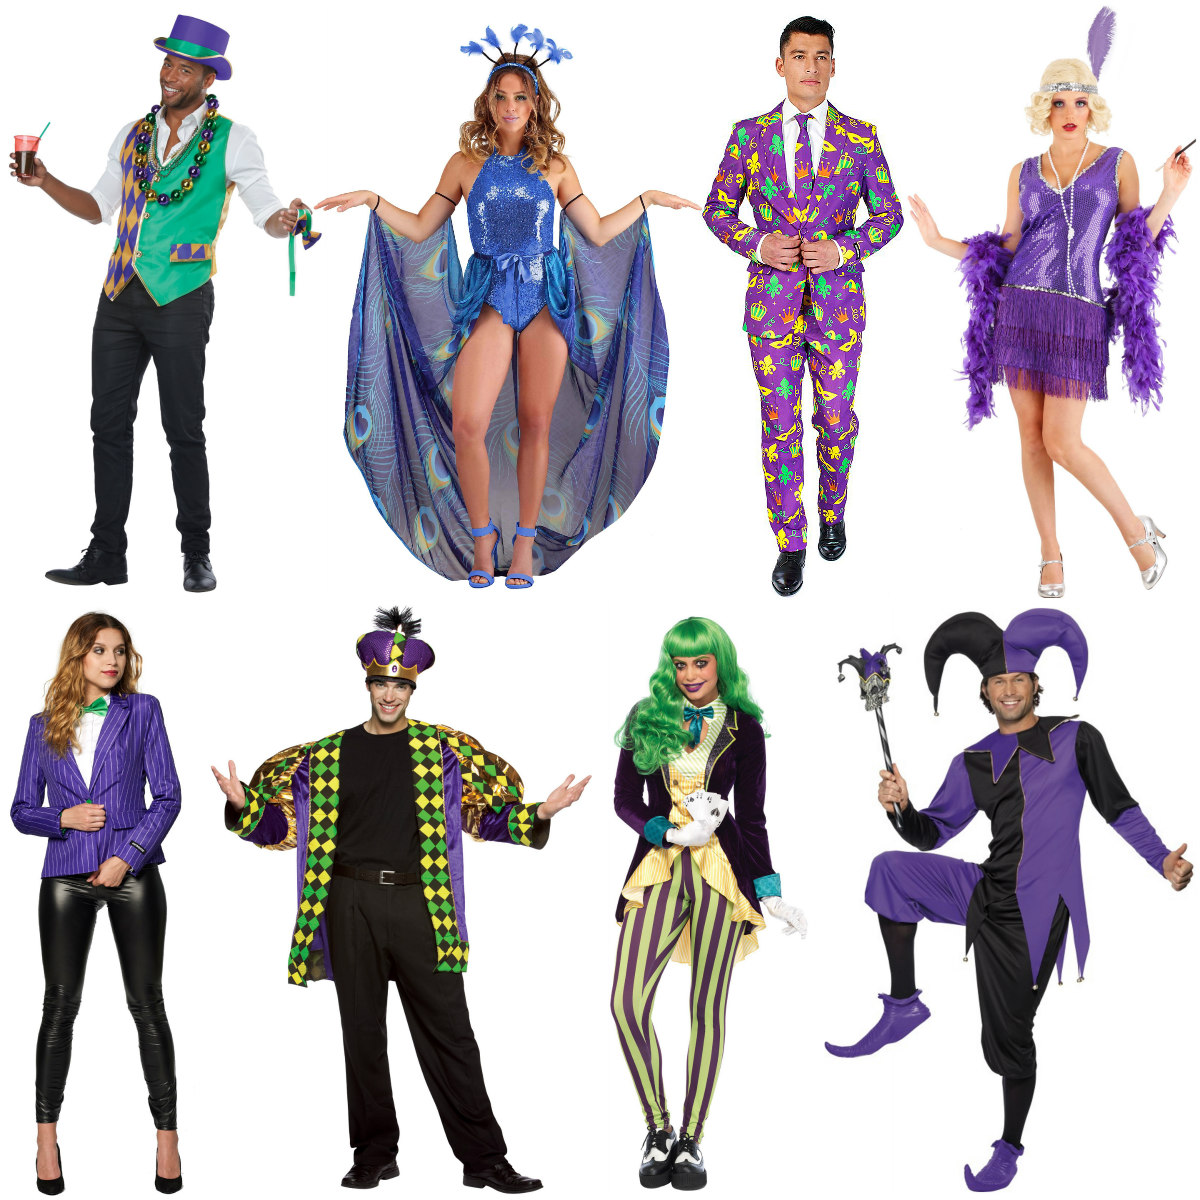 Mardi Gras Costumes for Adults